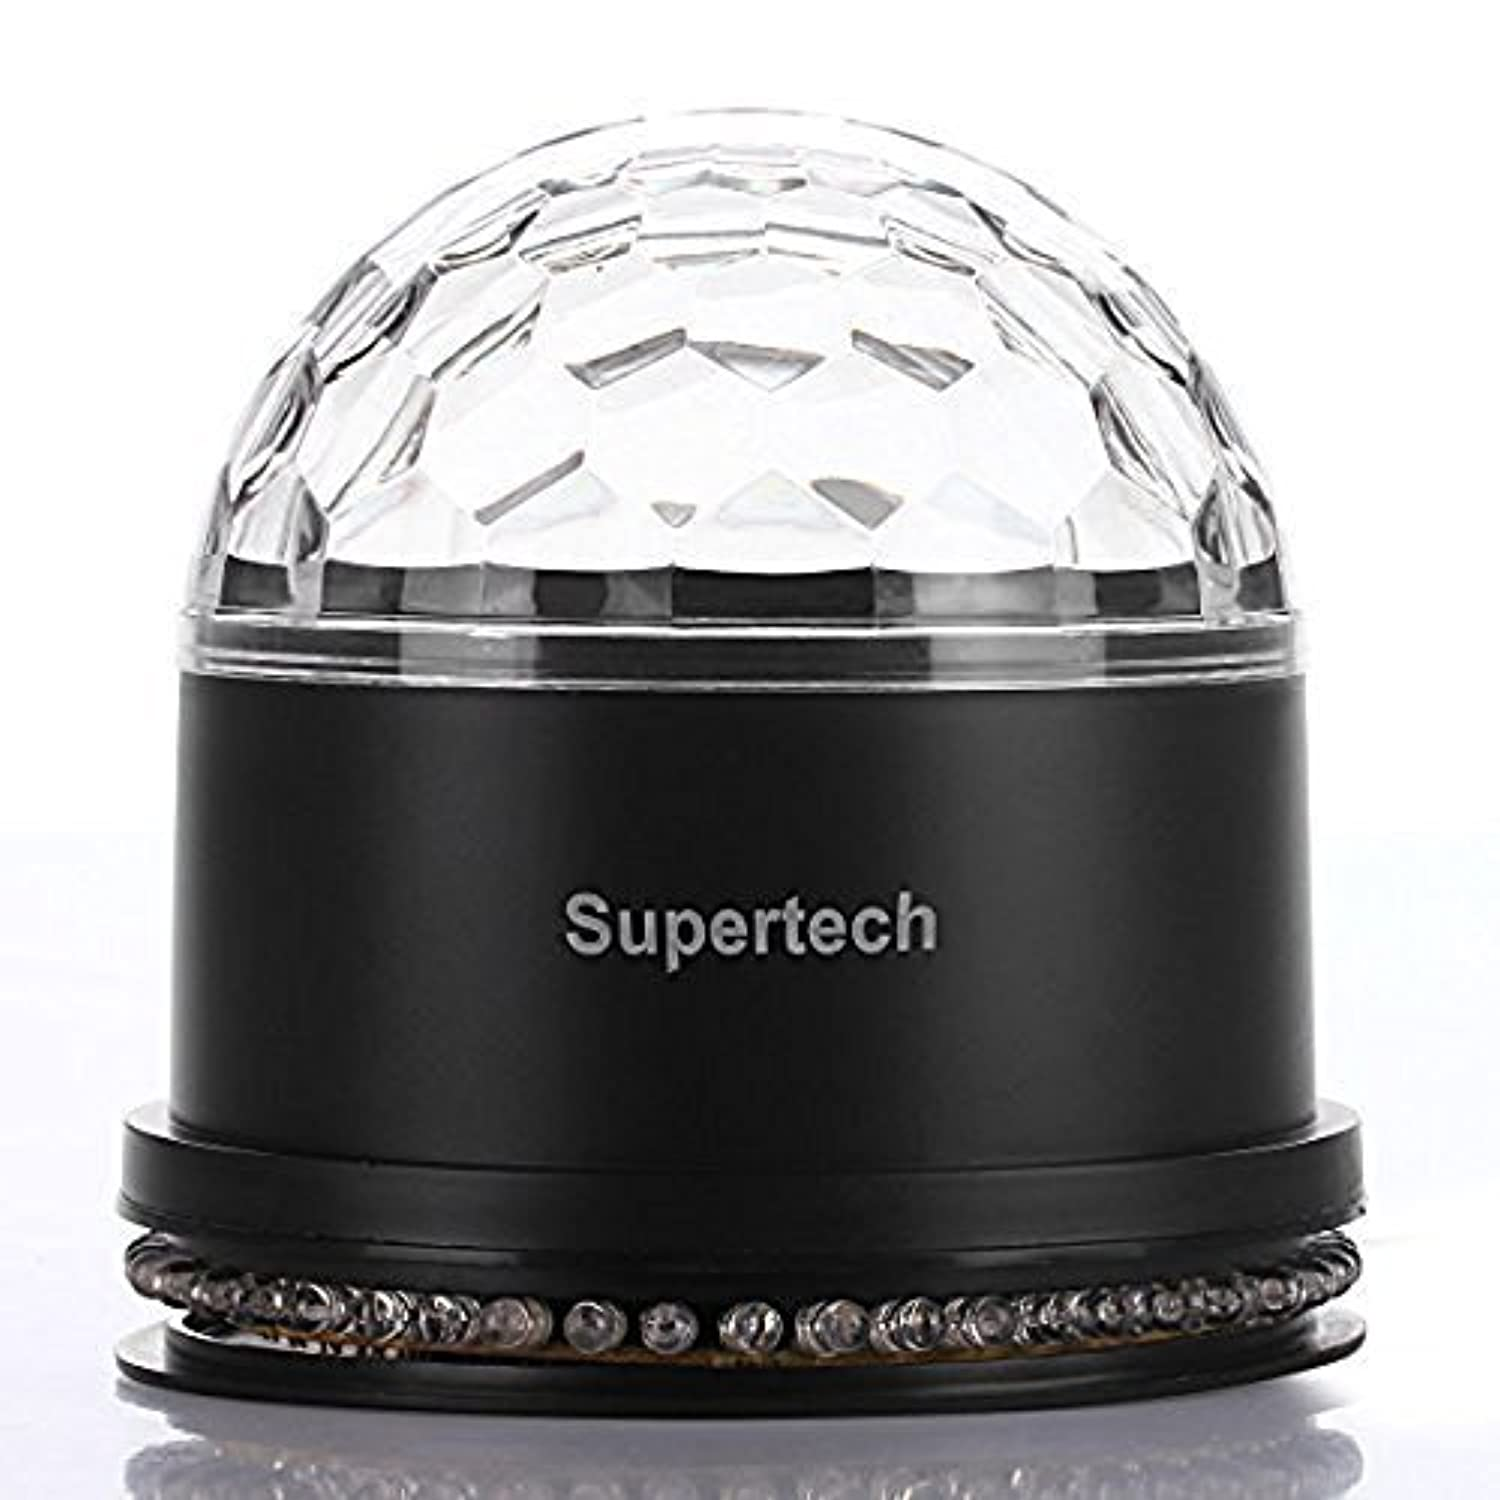 Party LightsSupertech Muliti Color Changes Sound Actived Auto RGB Mini Rotating Magic Disco Ball Strobe Stage Lights For DJ Dancing Show Concert Xmas Halloween [並行輸入品]